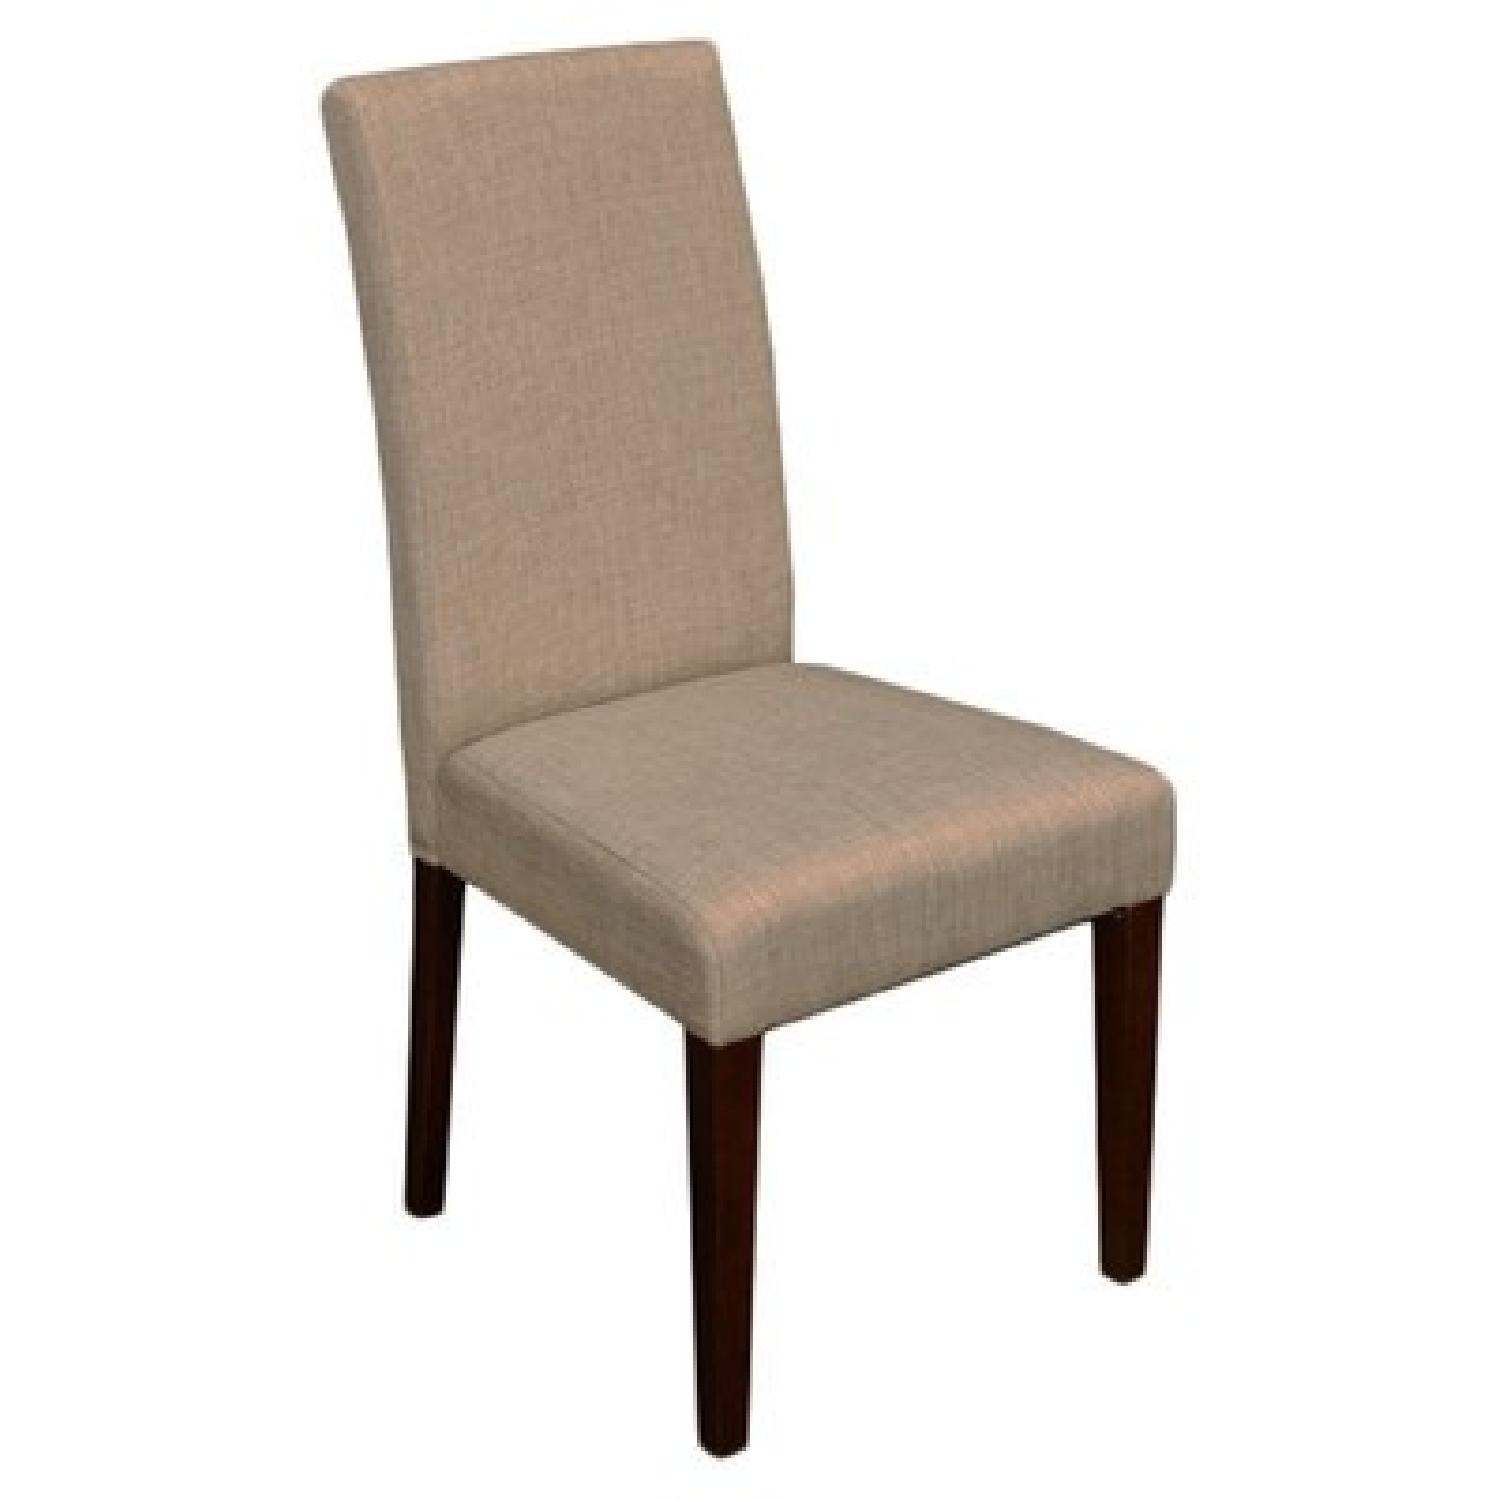 Monsoon Pacific Beige High-Backed Dining Chairs - image-1